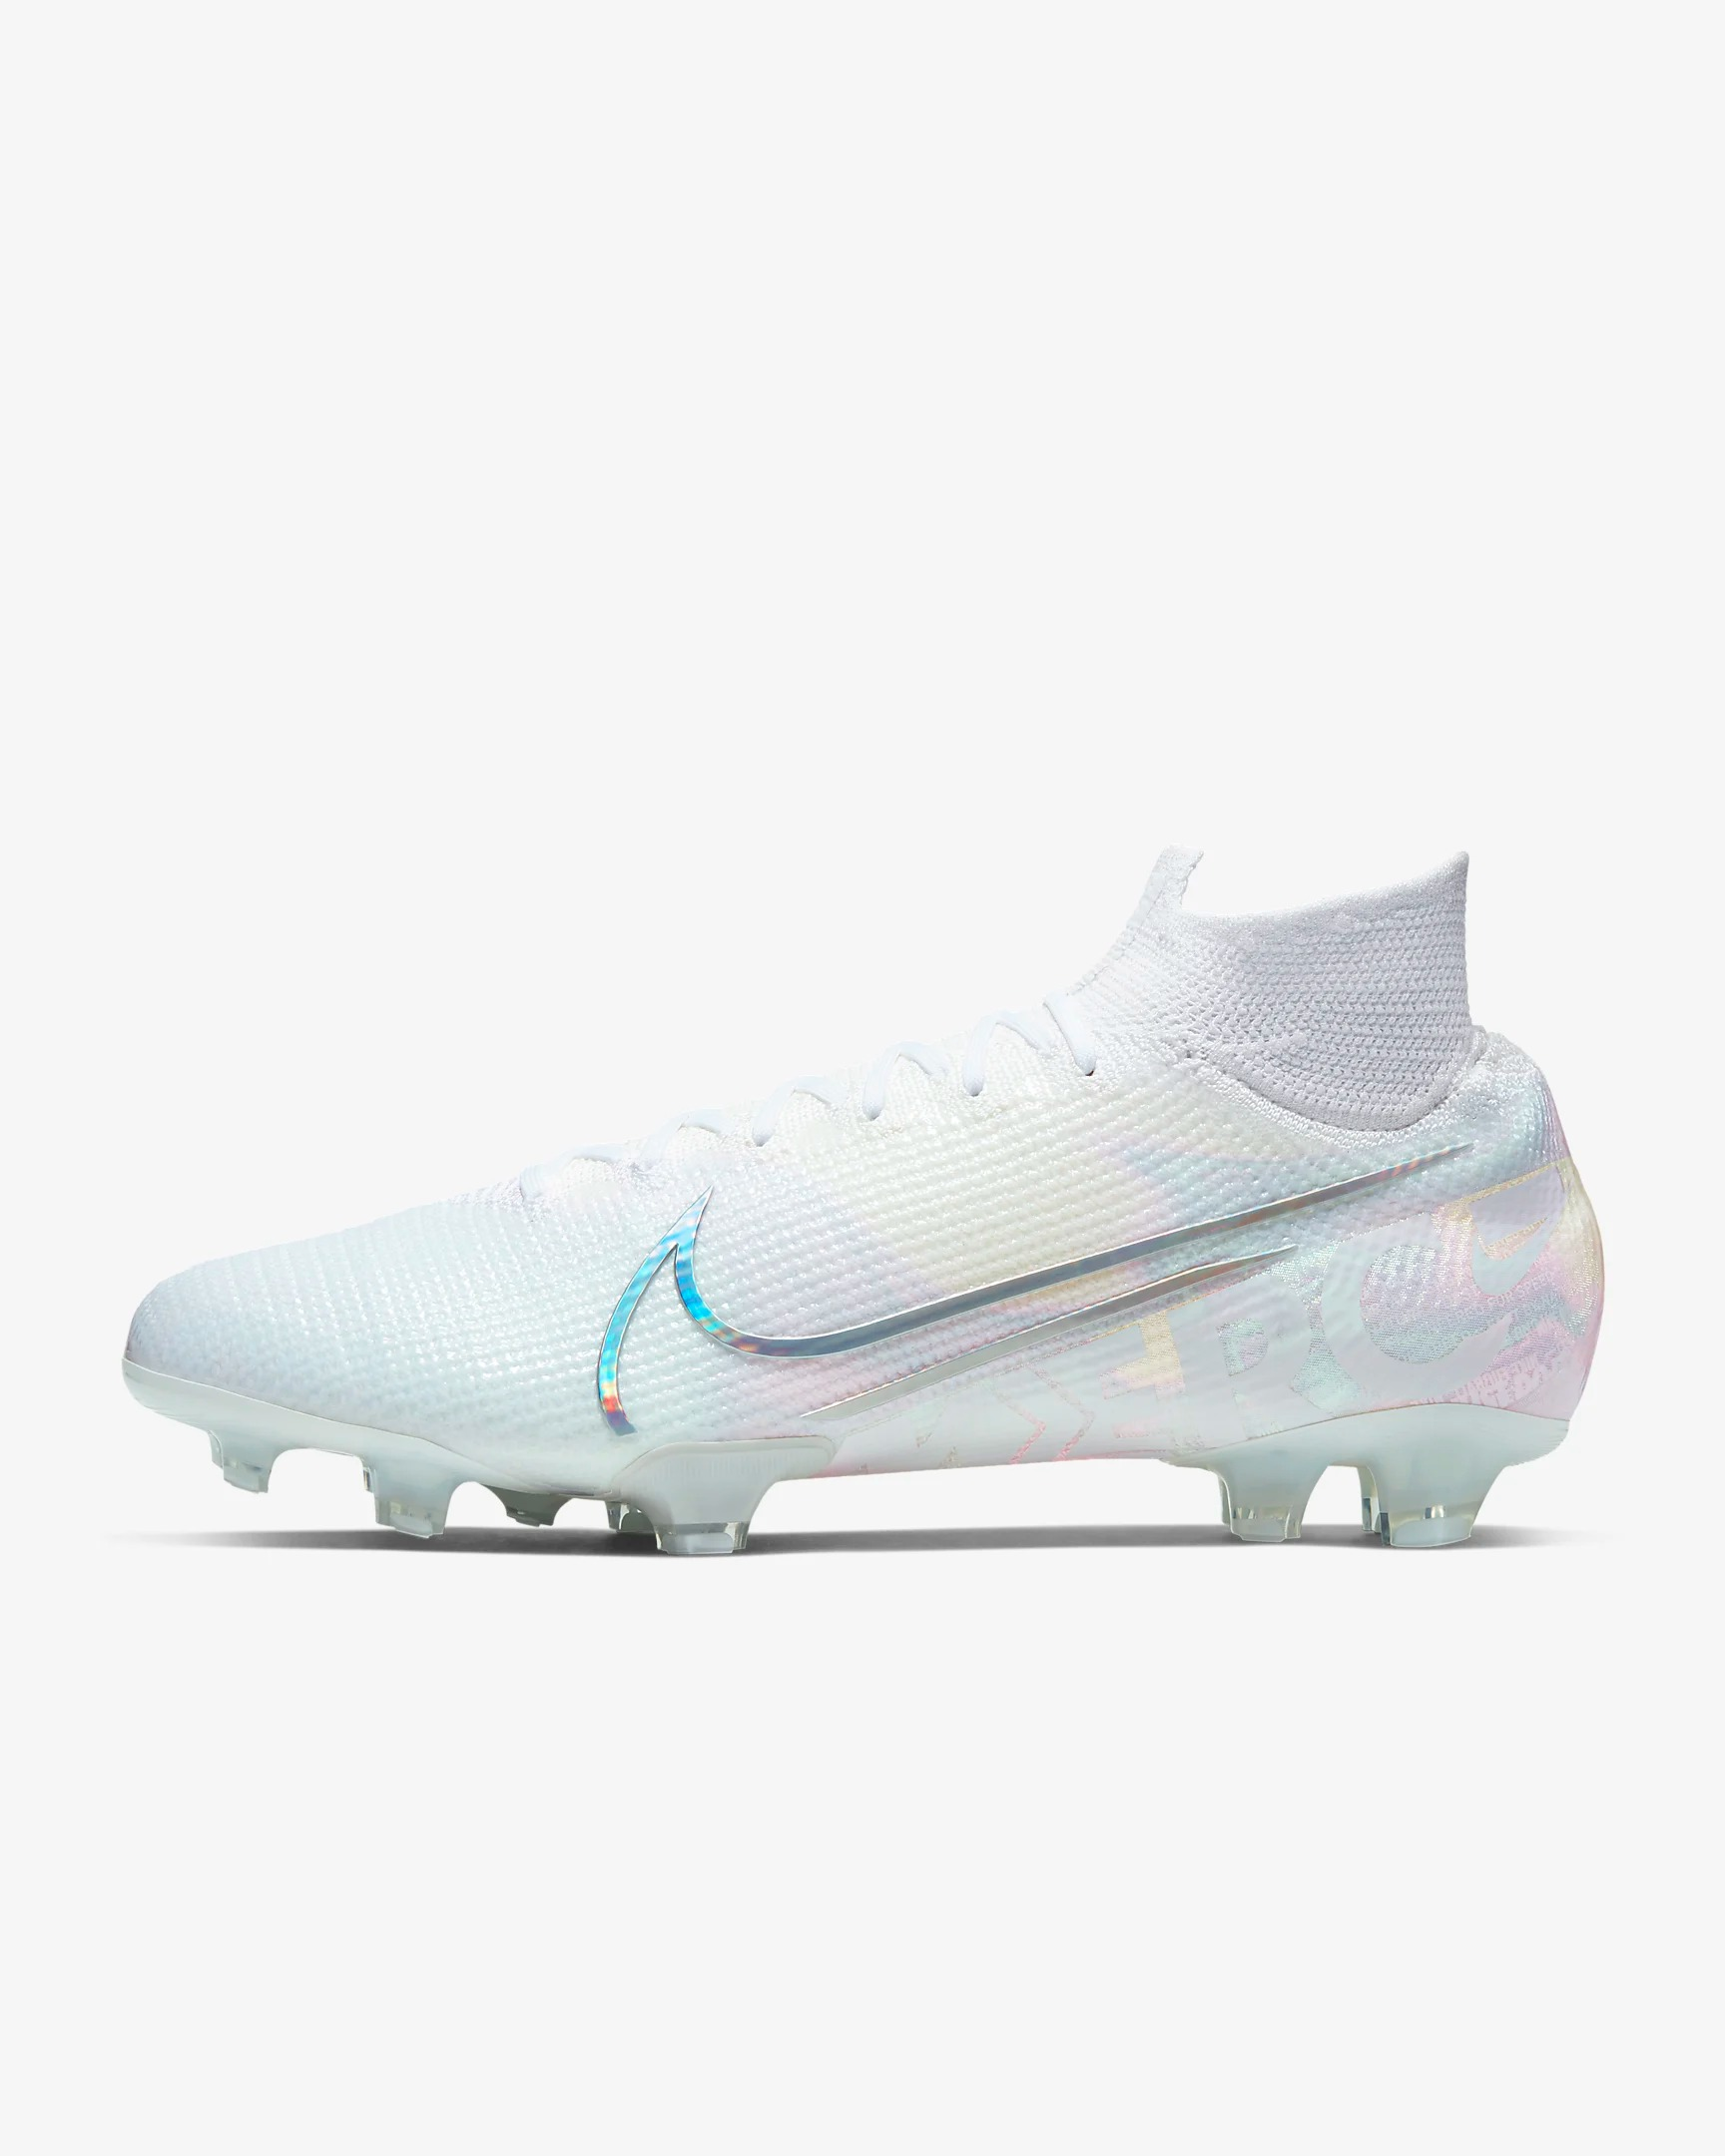 los angeles 731e6 cebdb Nike Mercurial Superfly 7 Elite FG firm ground soccer cleats White